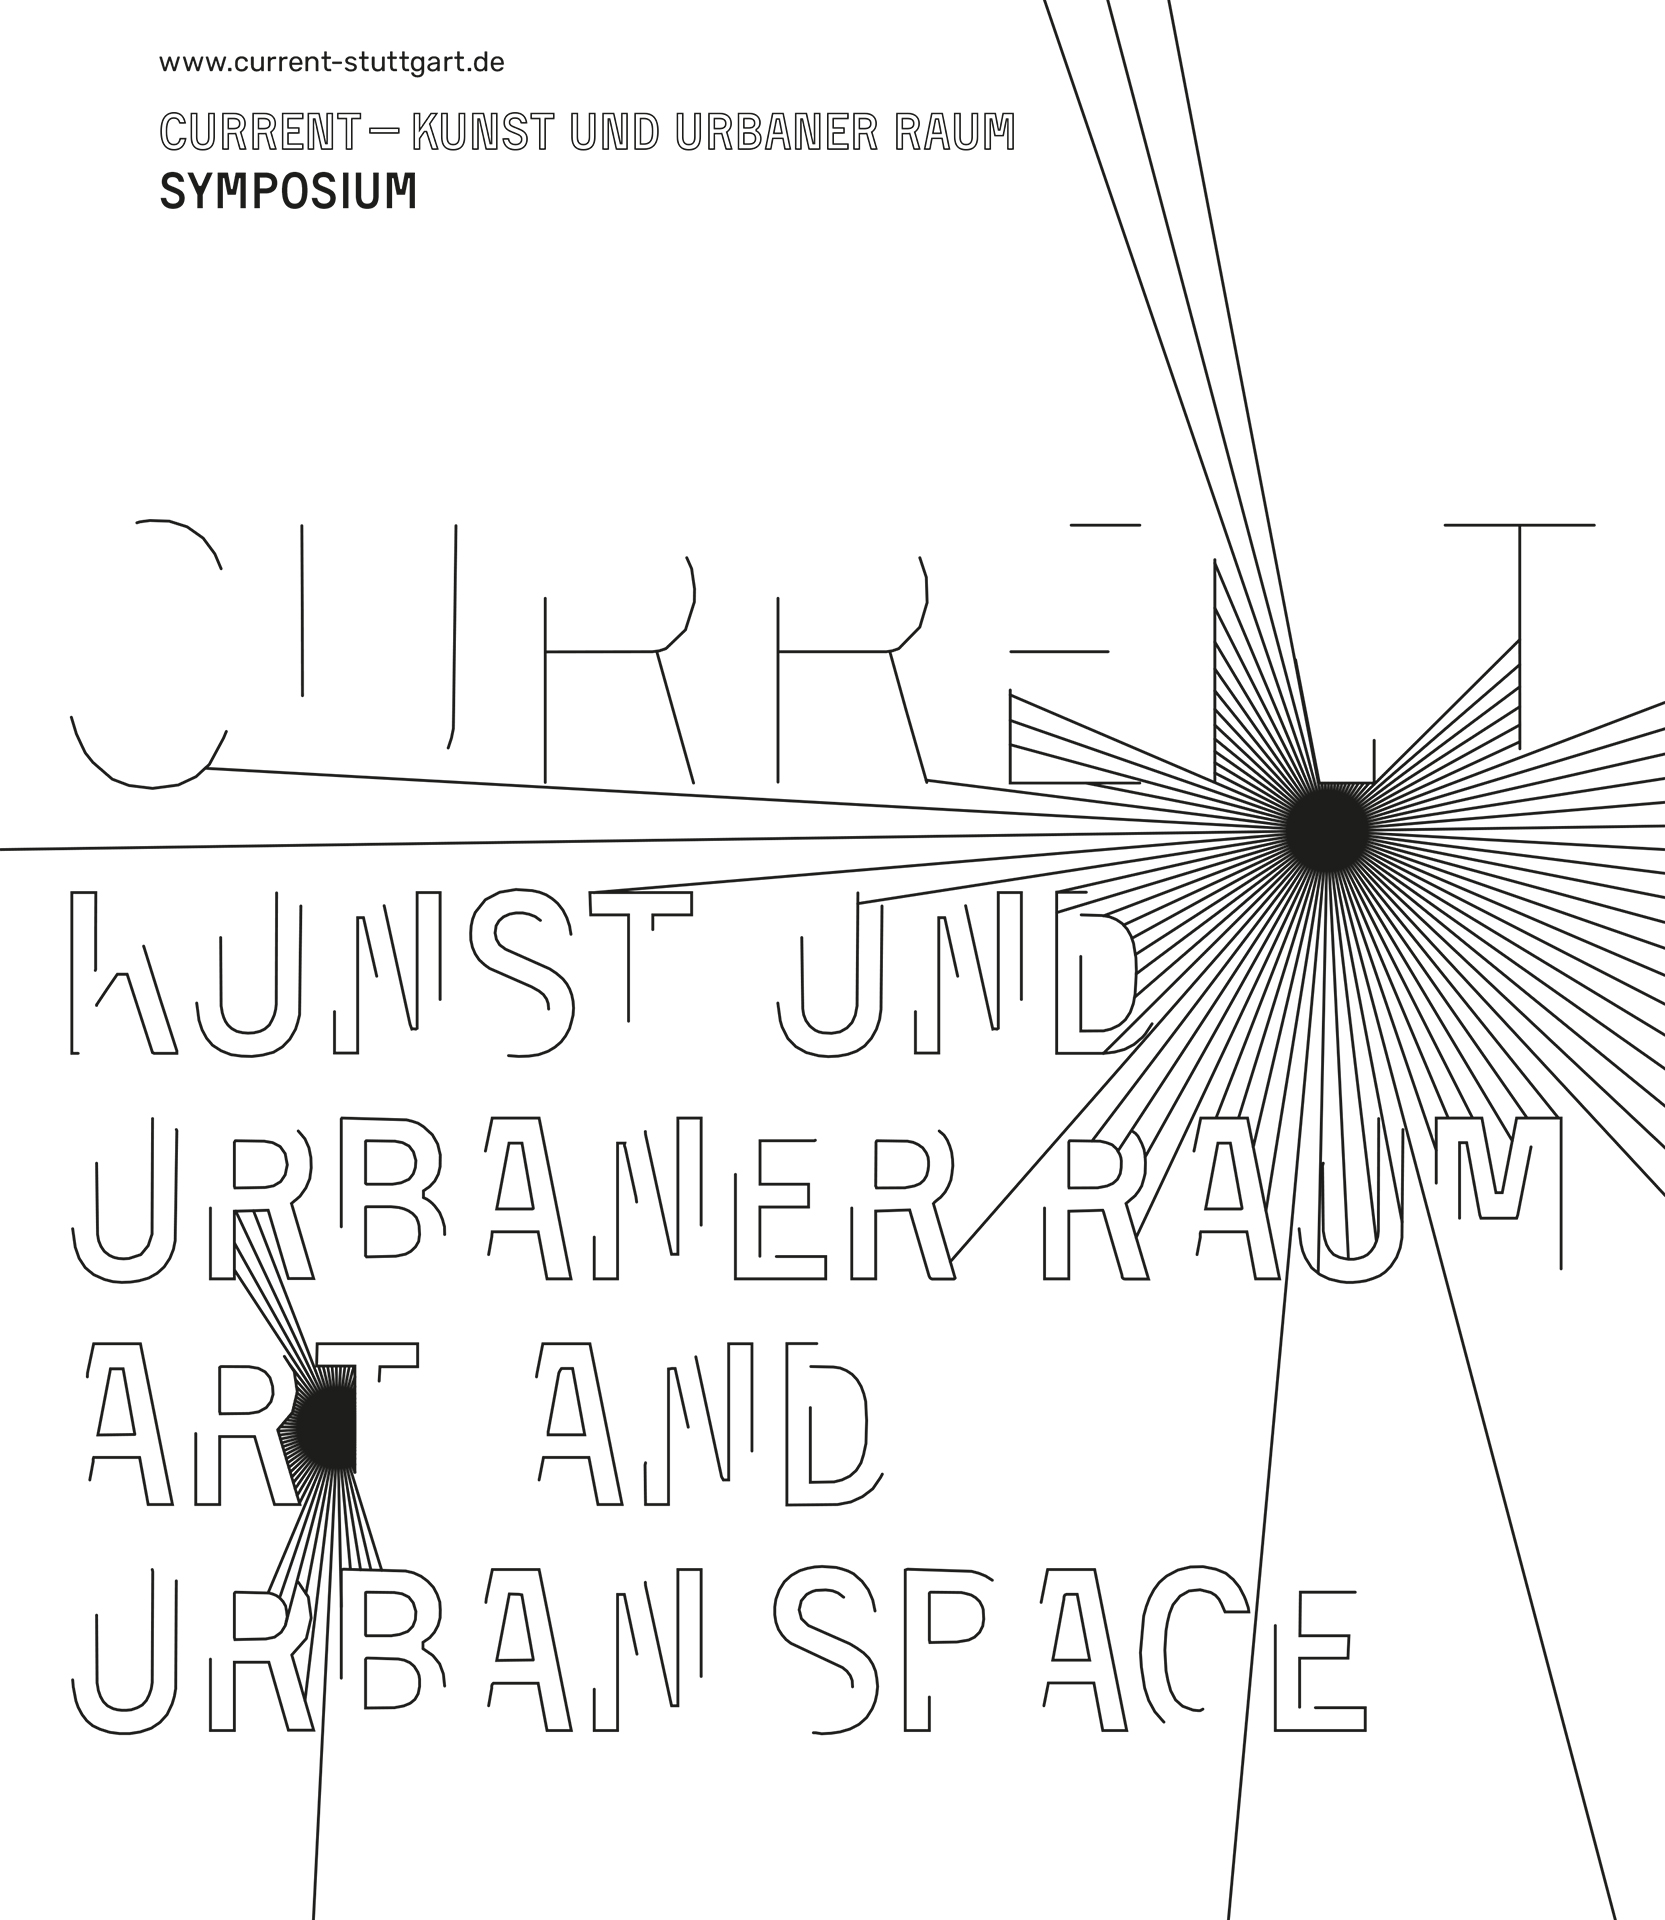 CURRENT: Art and Urban Space - in assembly